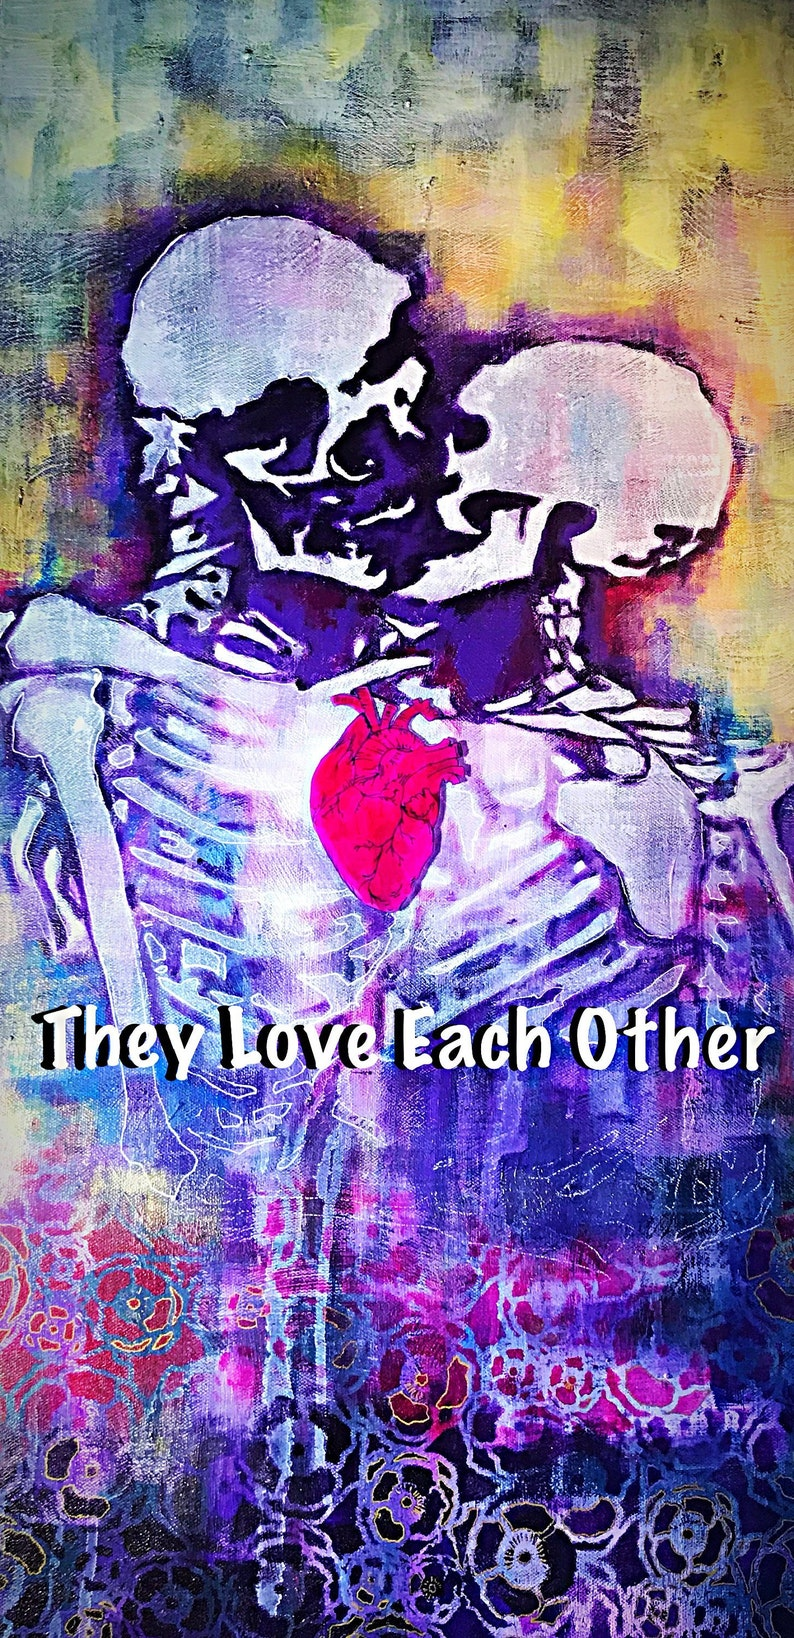 Vinyl Sticker Grateful Dead They Love Each Other Tleo Etsy